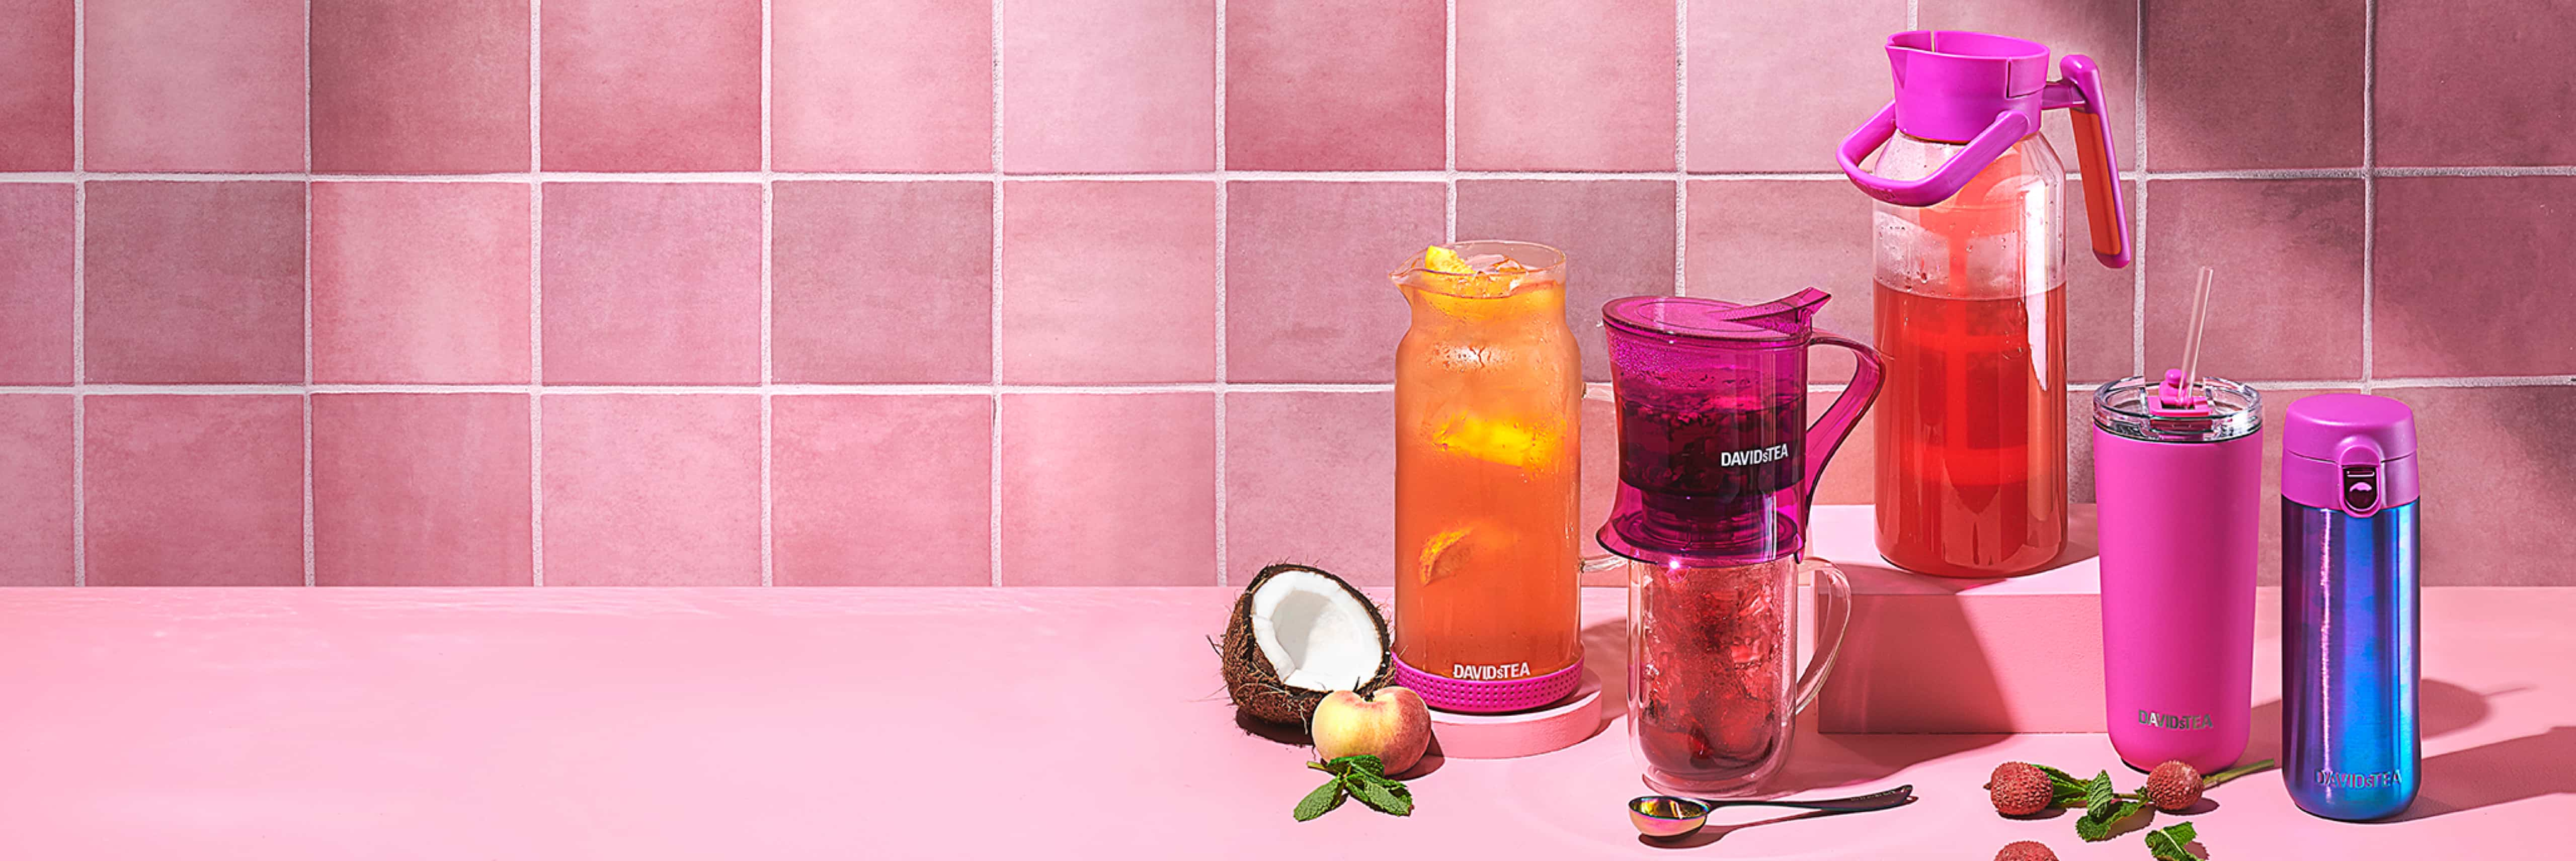 Multiple tea-serving accessoires filled with iced teas next to raw fruits & accessories.